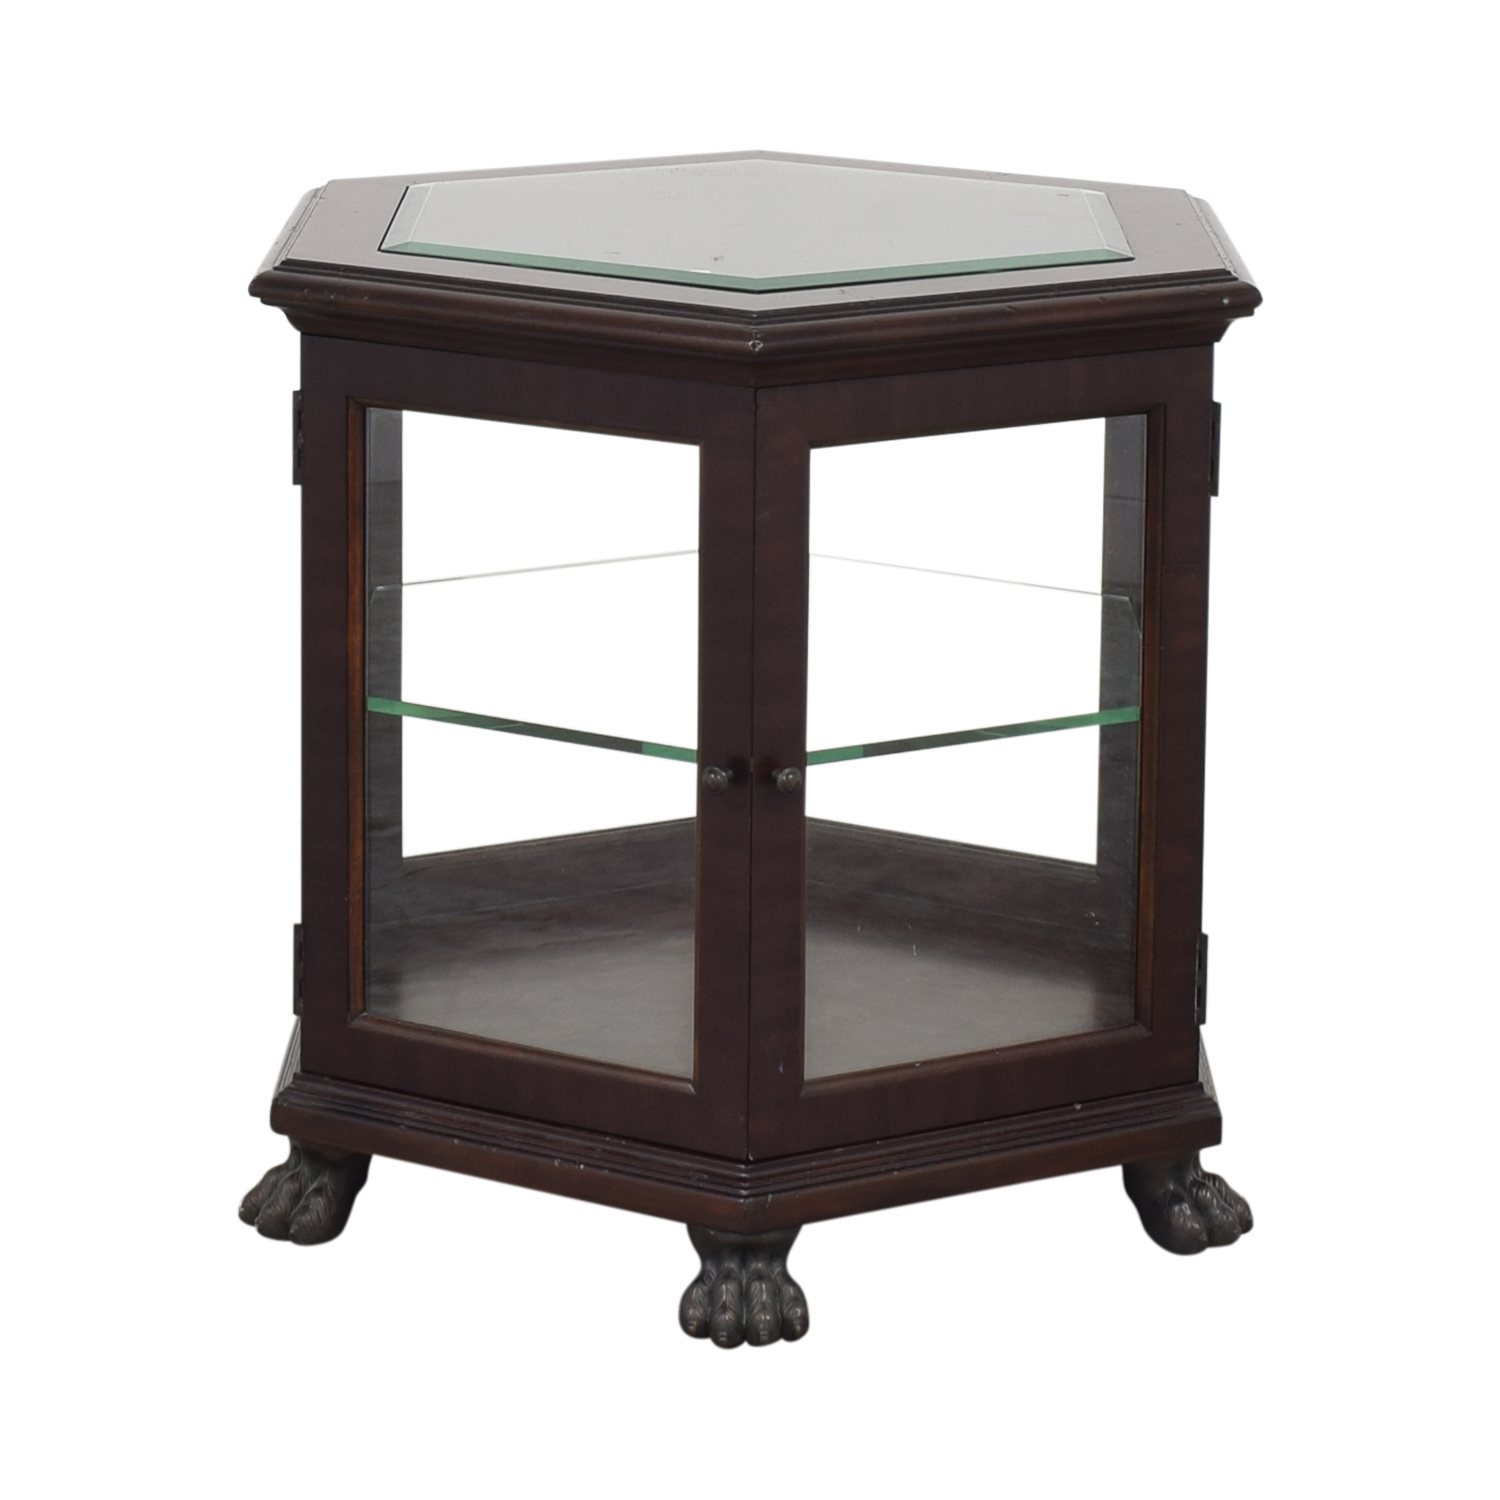 Thomasville Thomasville End Table with Storage dimensions